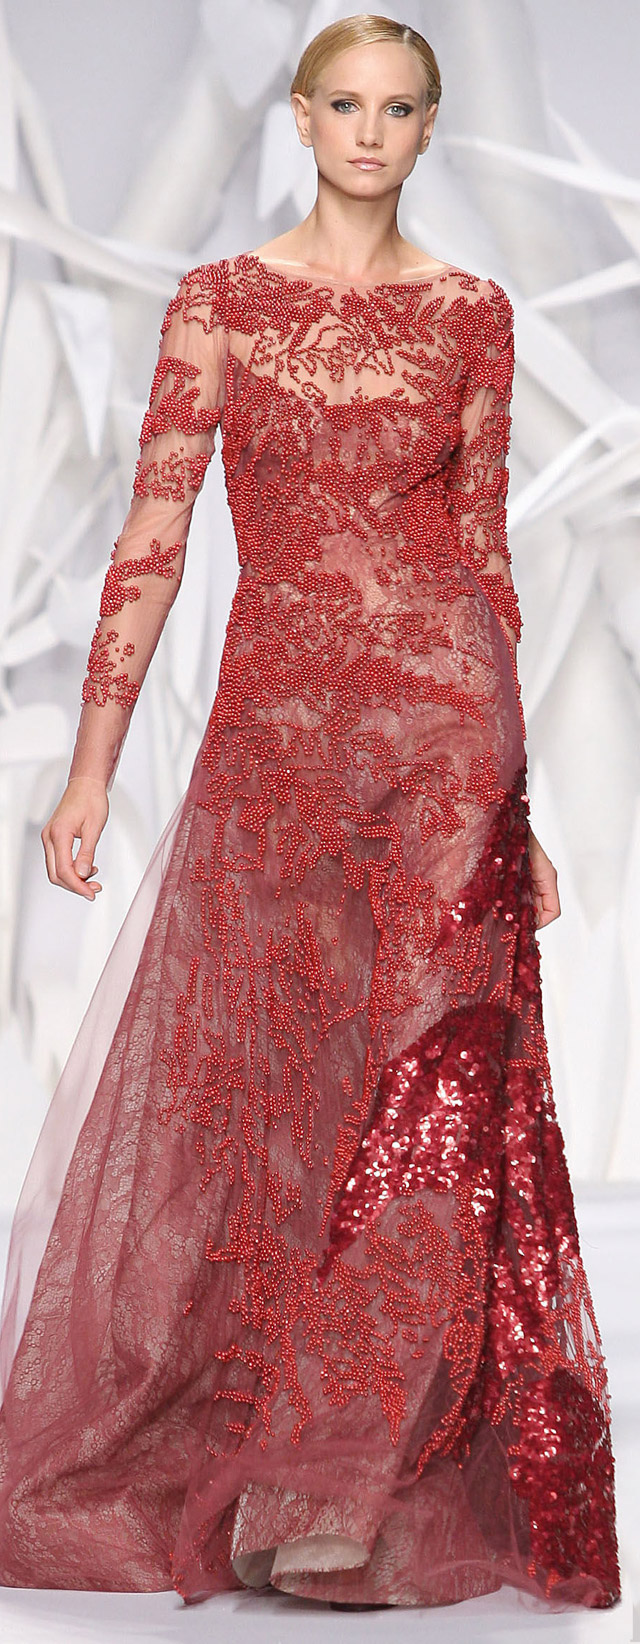 Abed Mahfouz Haute Couture Fall-Winter 2013-2014 (8)